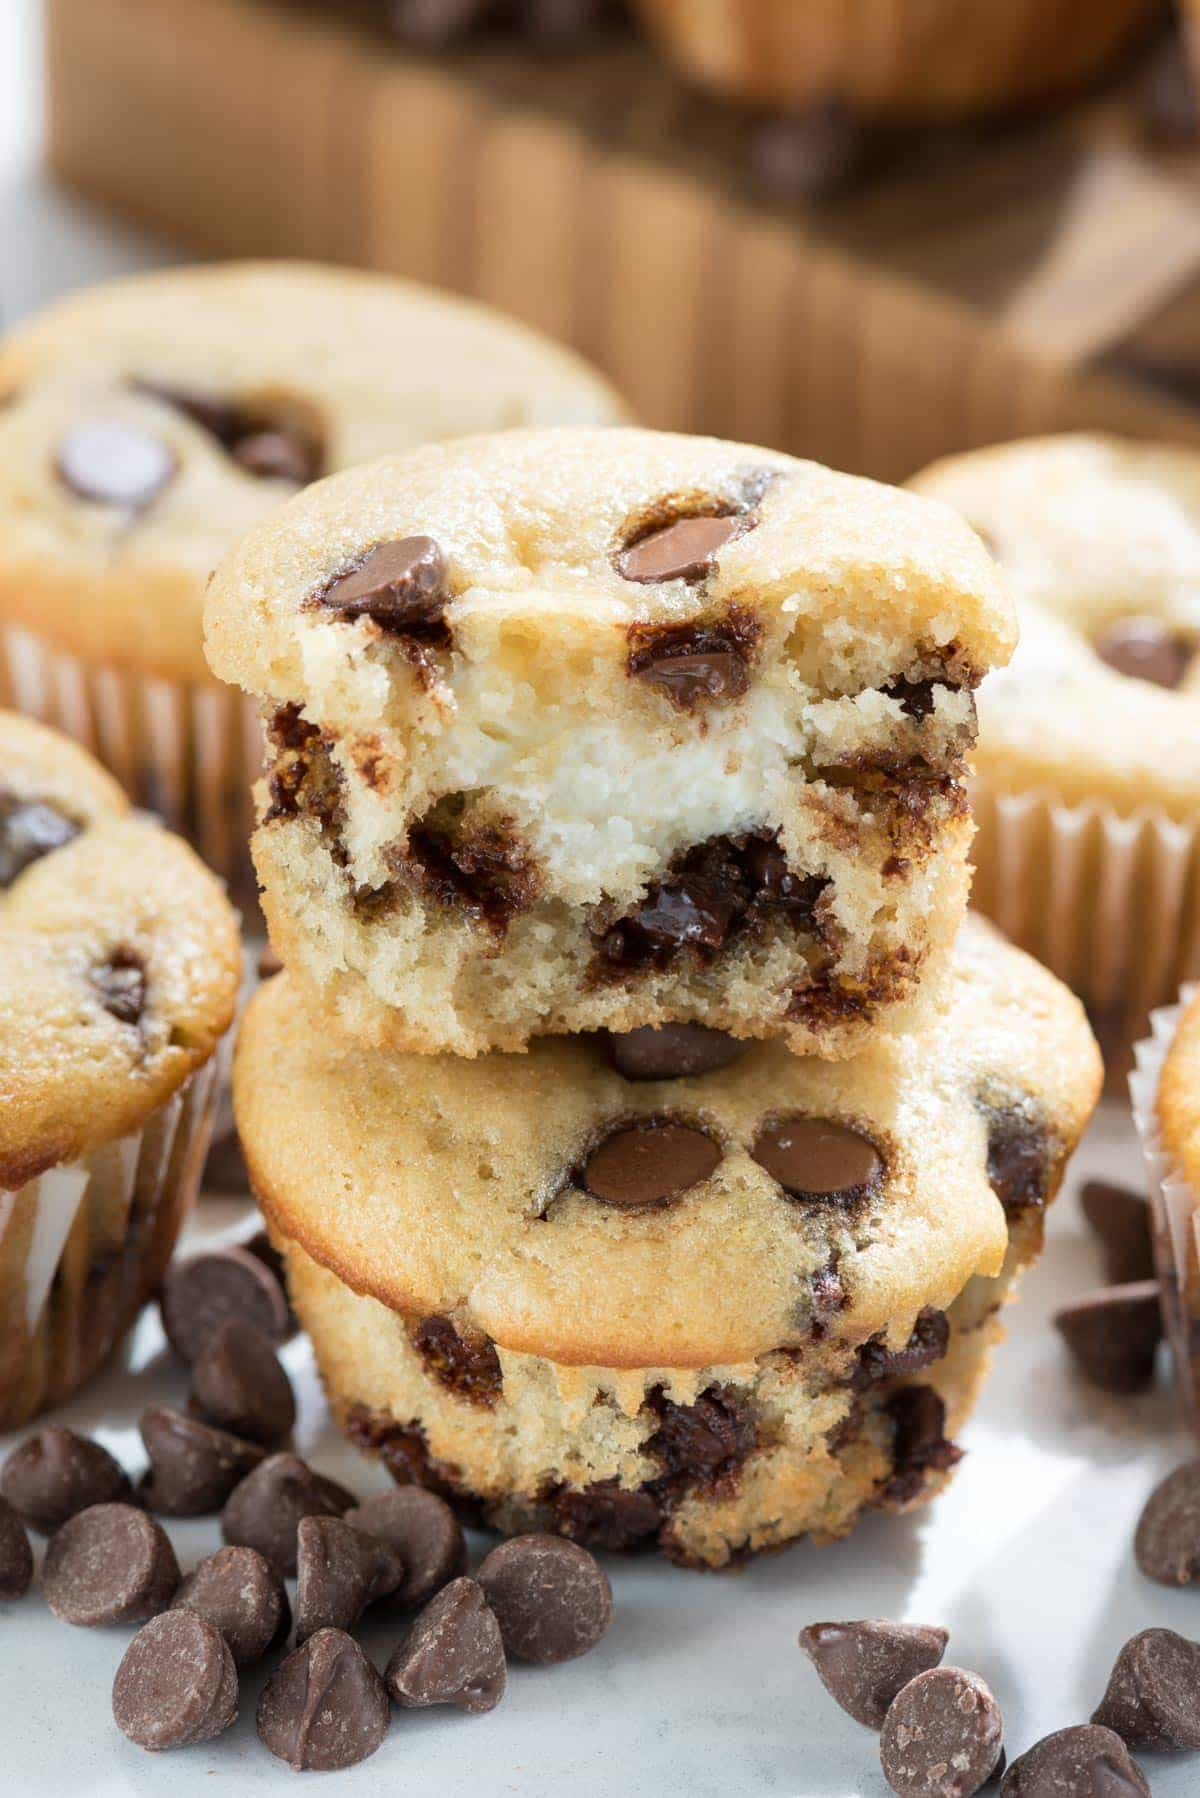 Chocolate Chip Cream Cheese Muffins